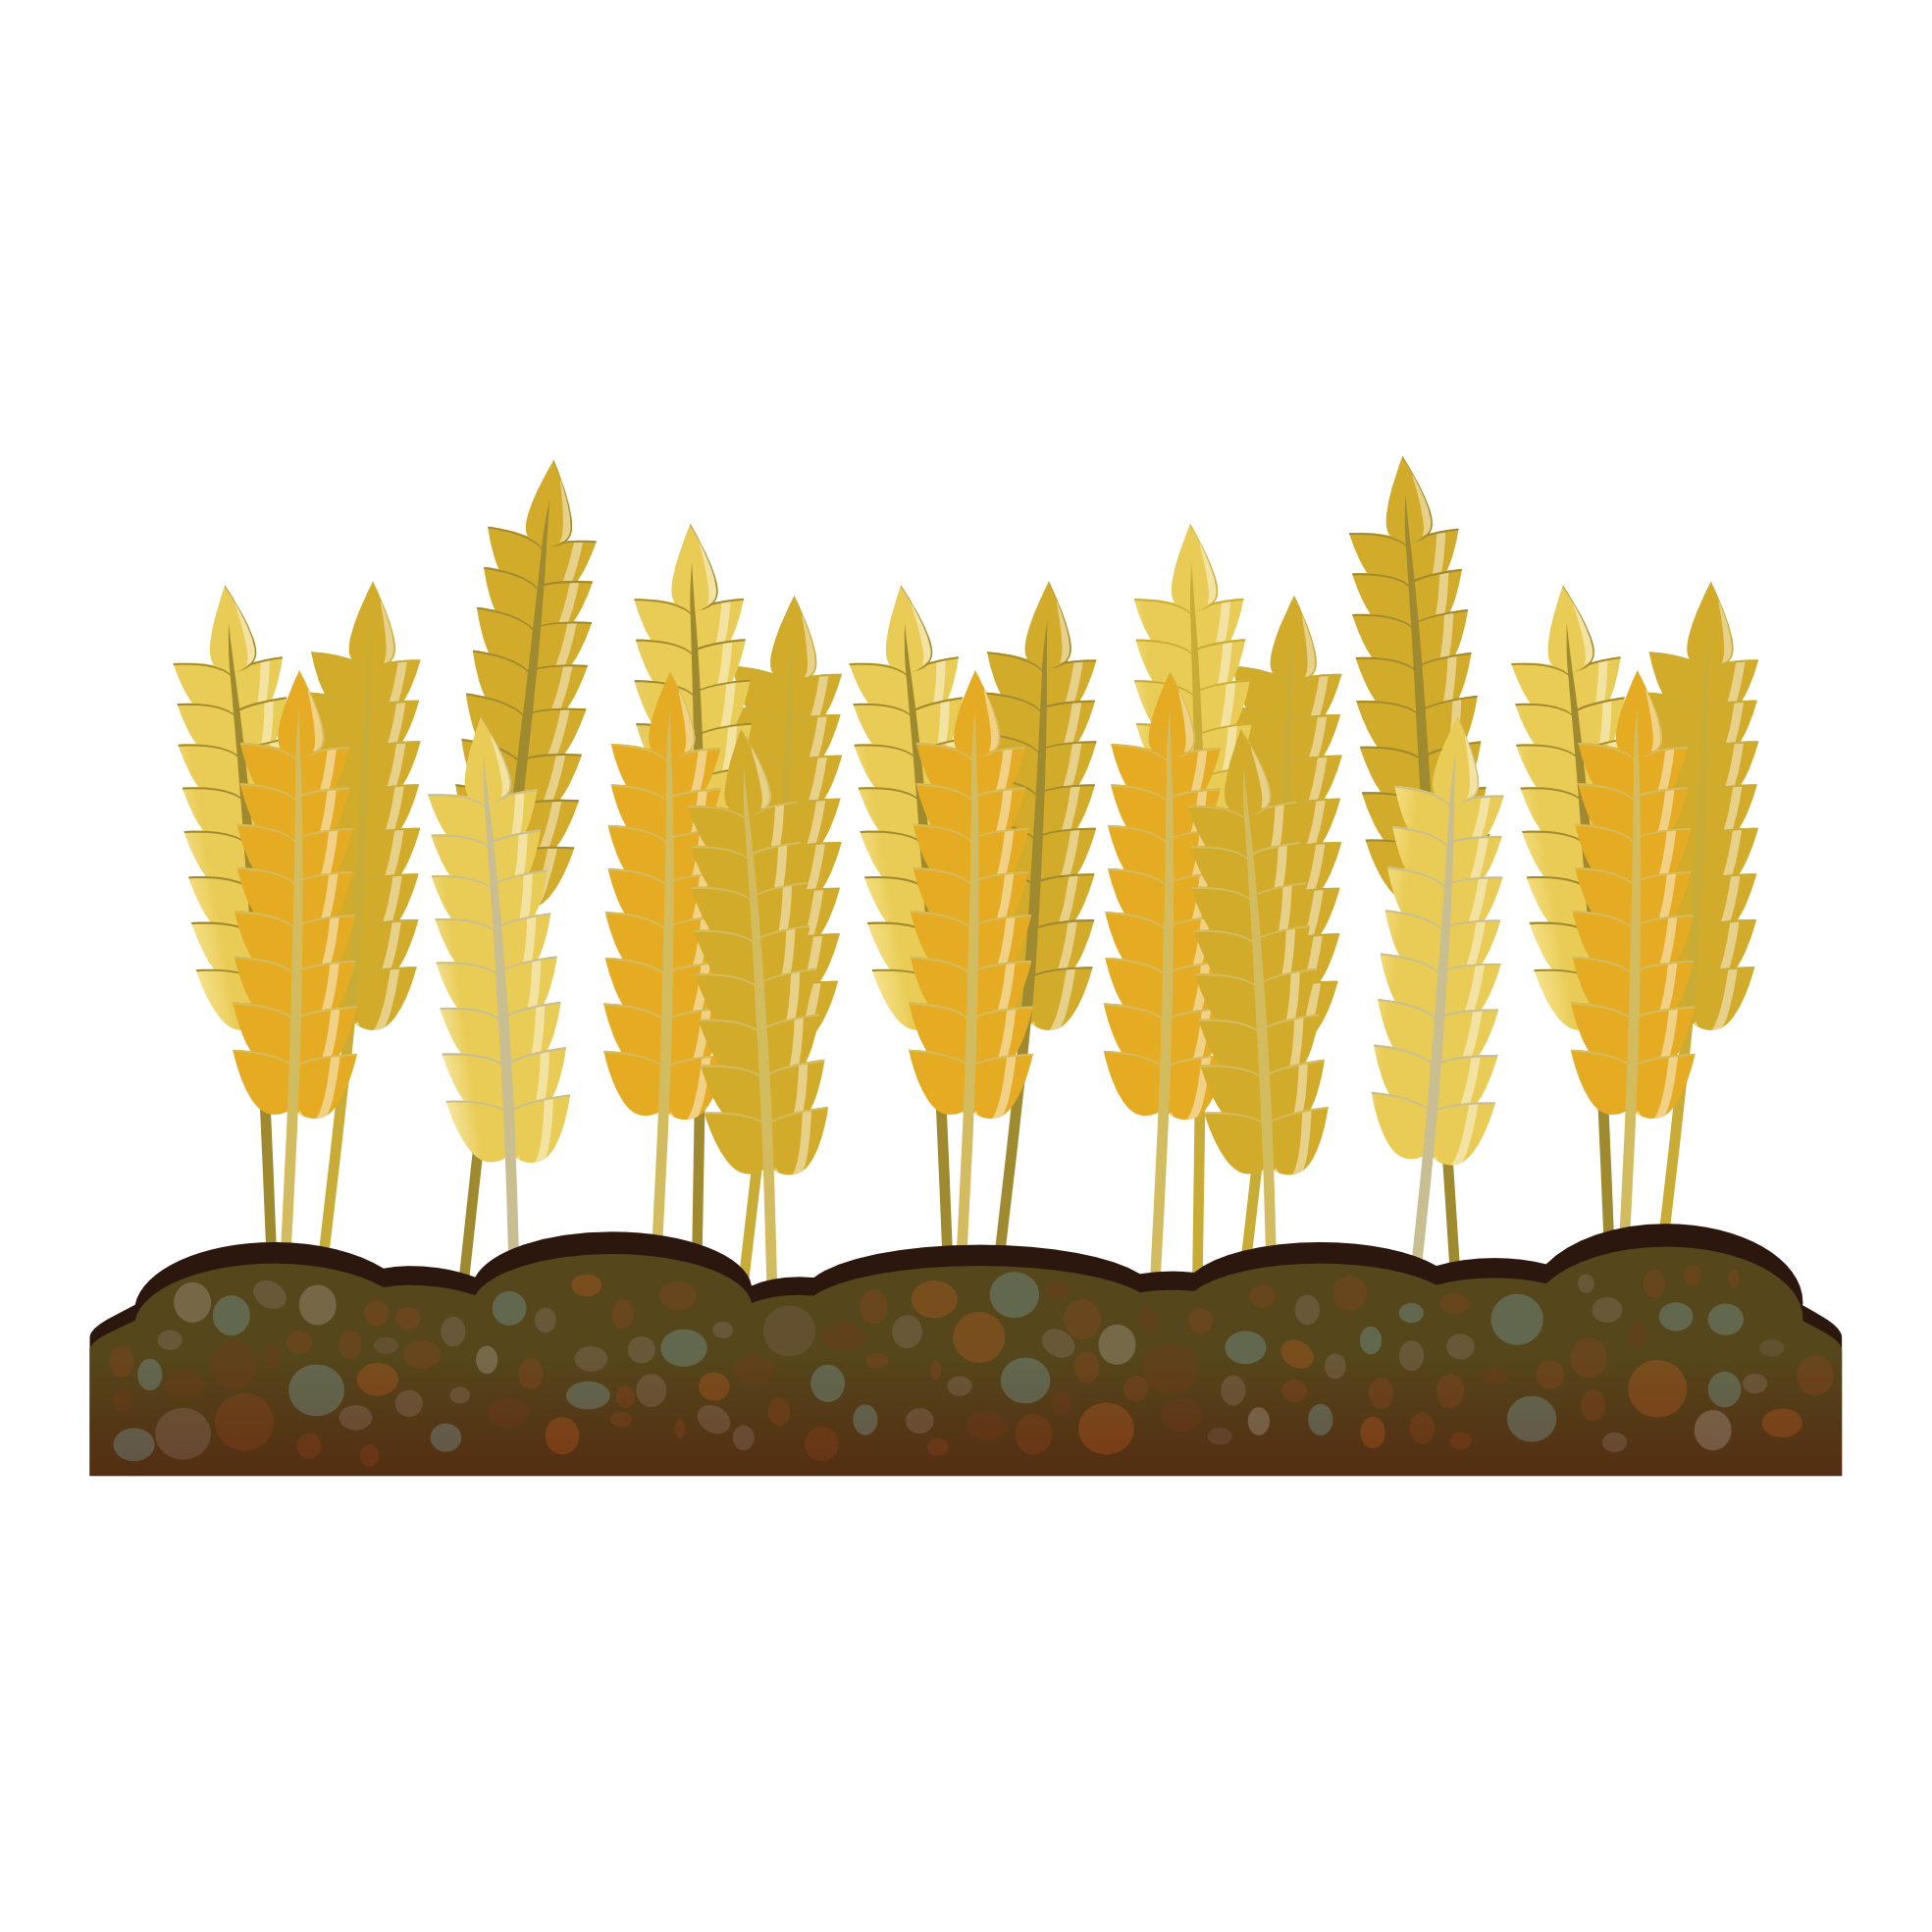 Crops clipart farmer chinese. Crop farm agriculture harvest